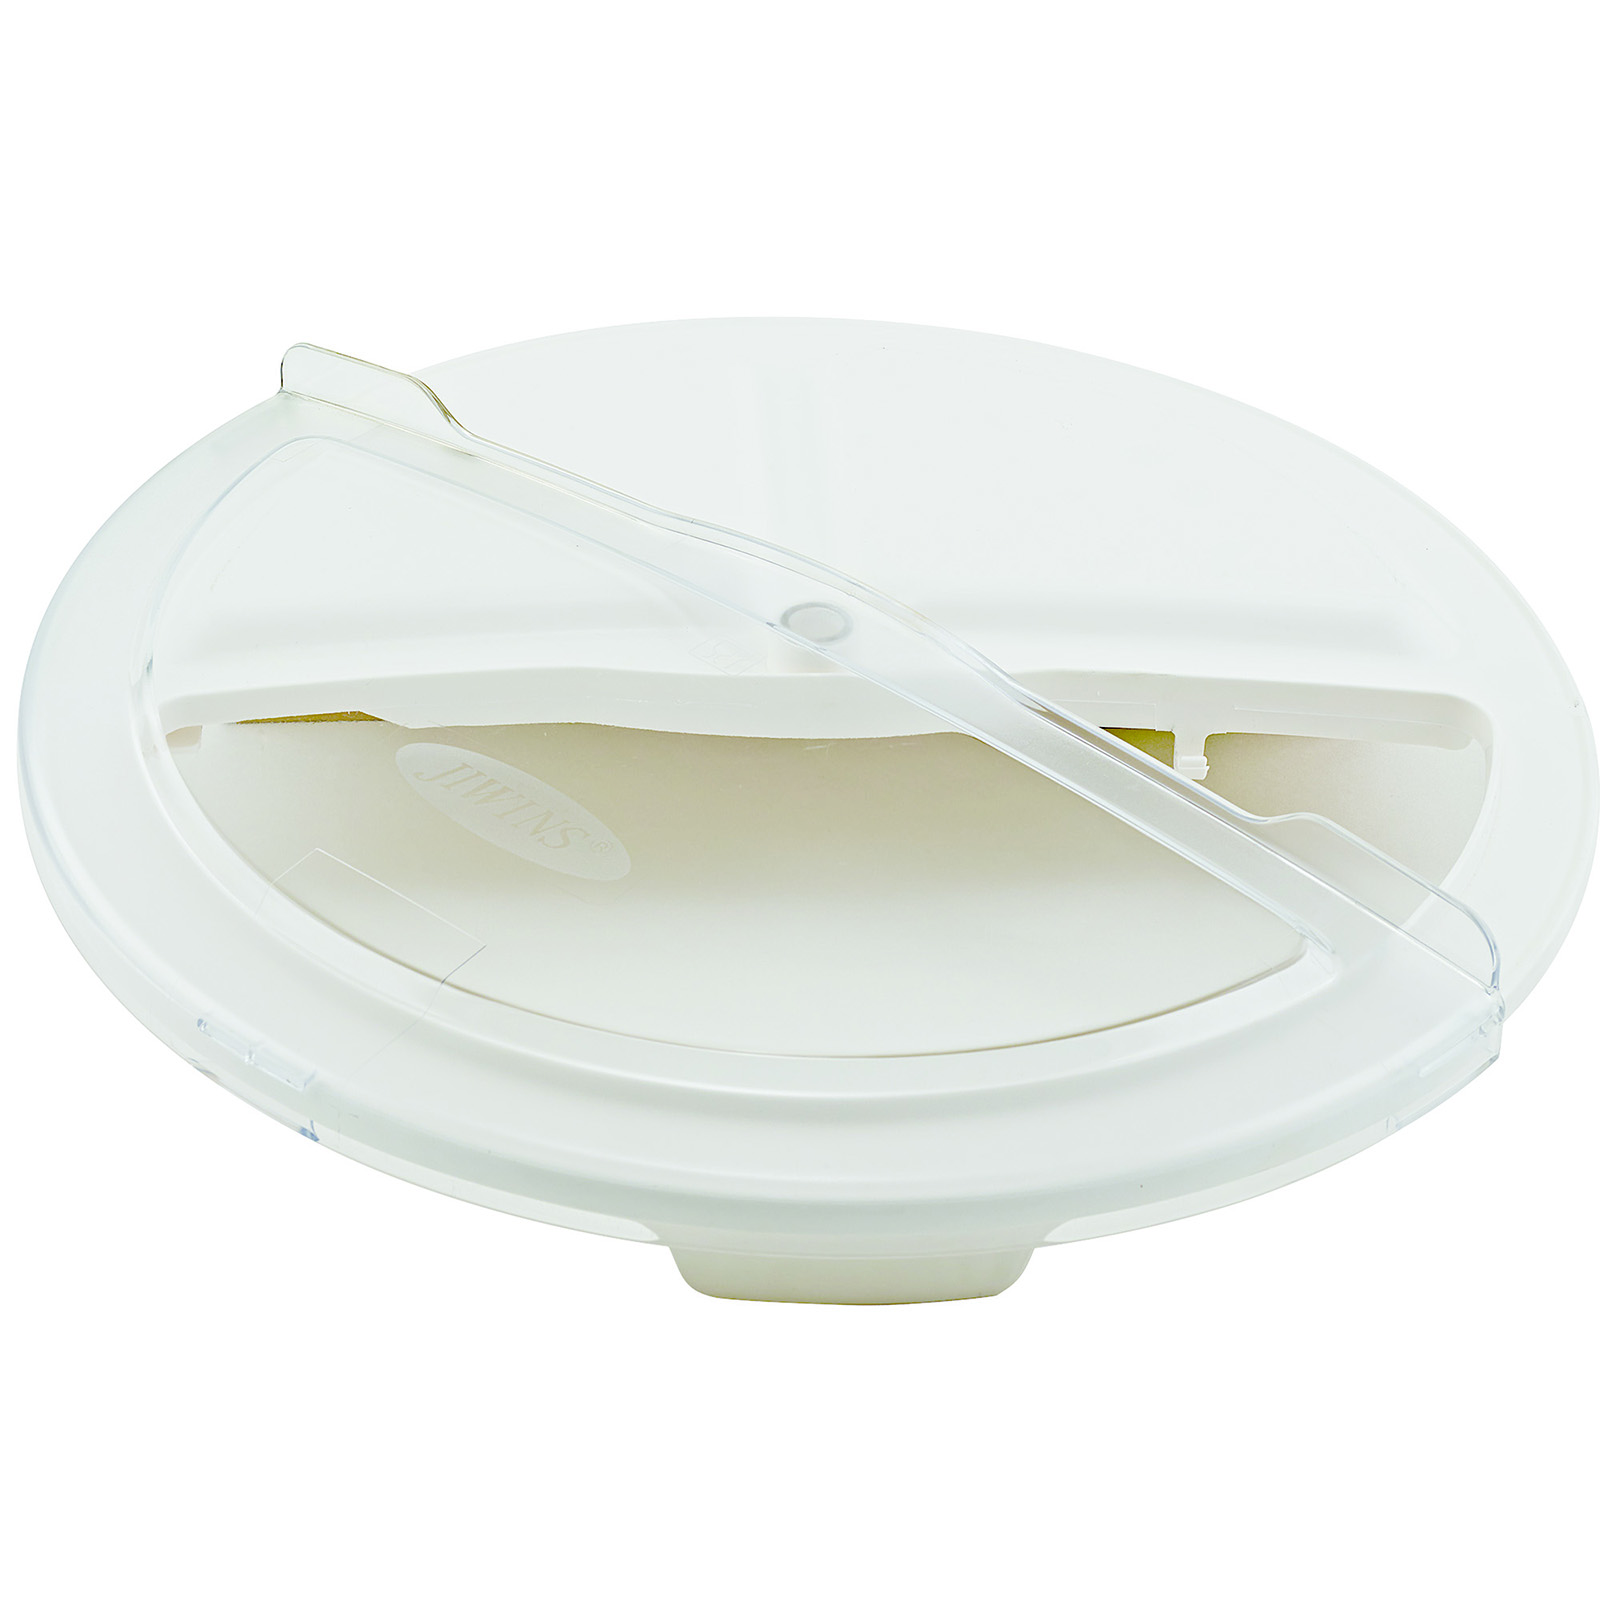 Winco FCW-32RC trash receptacle lid / top